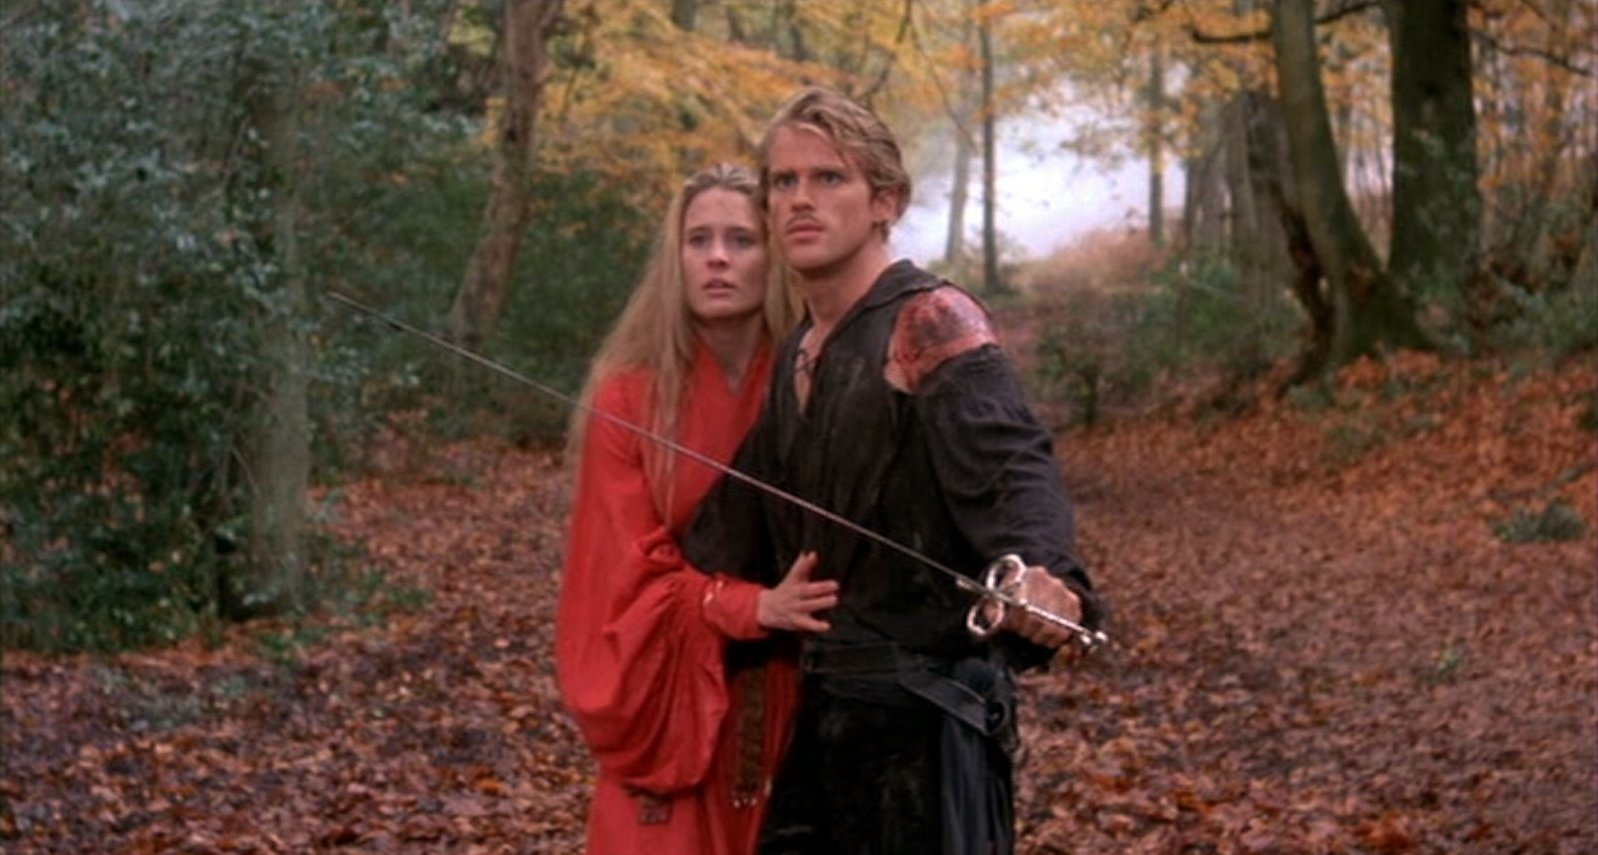 """The Honest Trailer for """"The Princess Bride"""" basically reaffirms that this is the best movie ever made"""